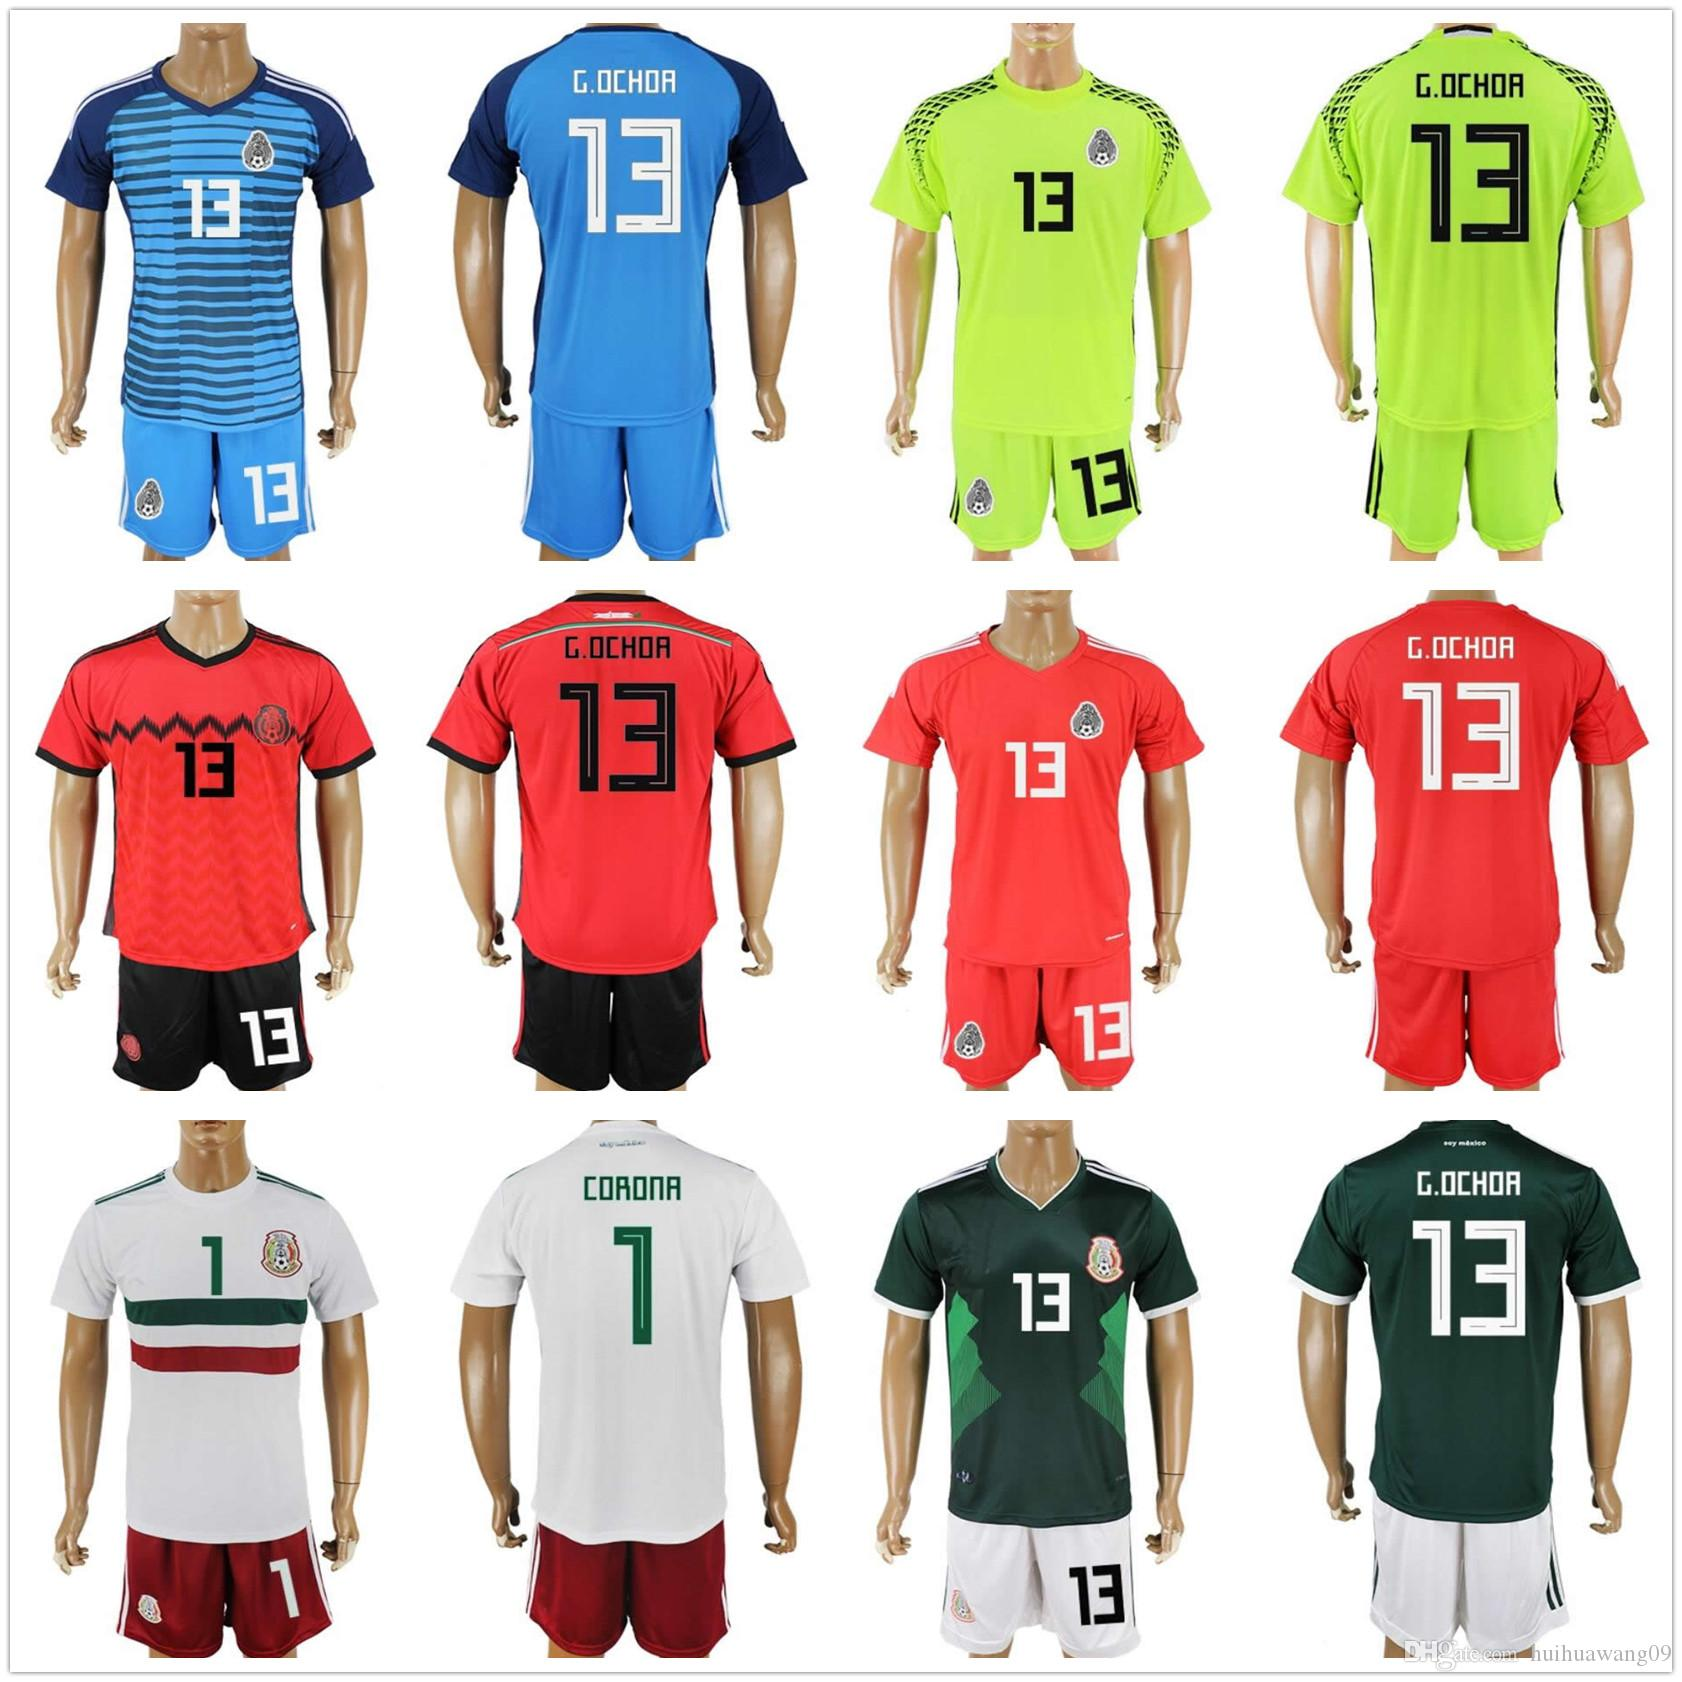 42f23a9ee mexico 1 corona long sleeves goalkeeper country jersey green soccer  2018  world cup red green mexico goalkeeper jerseys mexico soccer sets chicharito  g dos ...